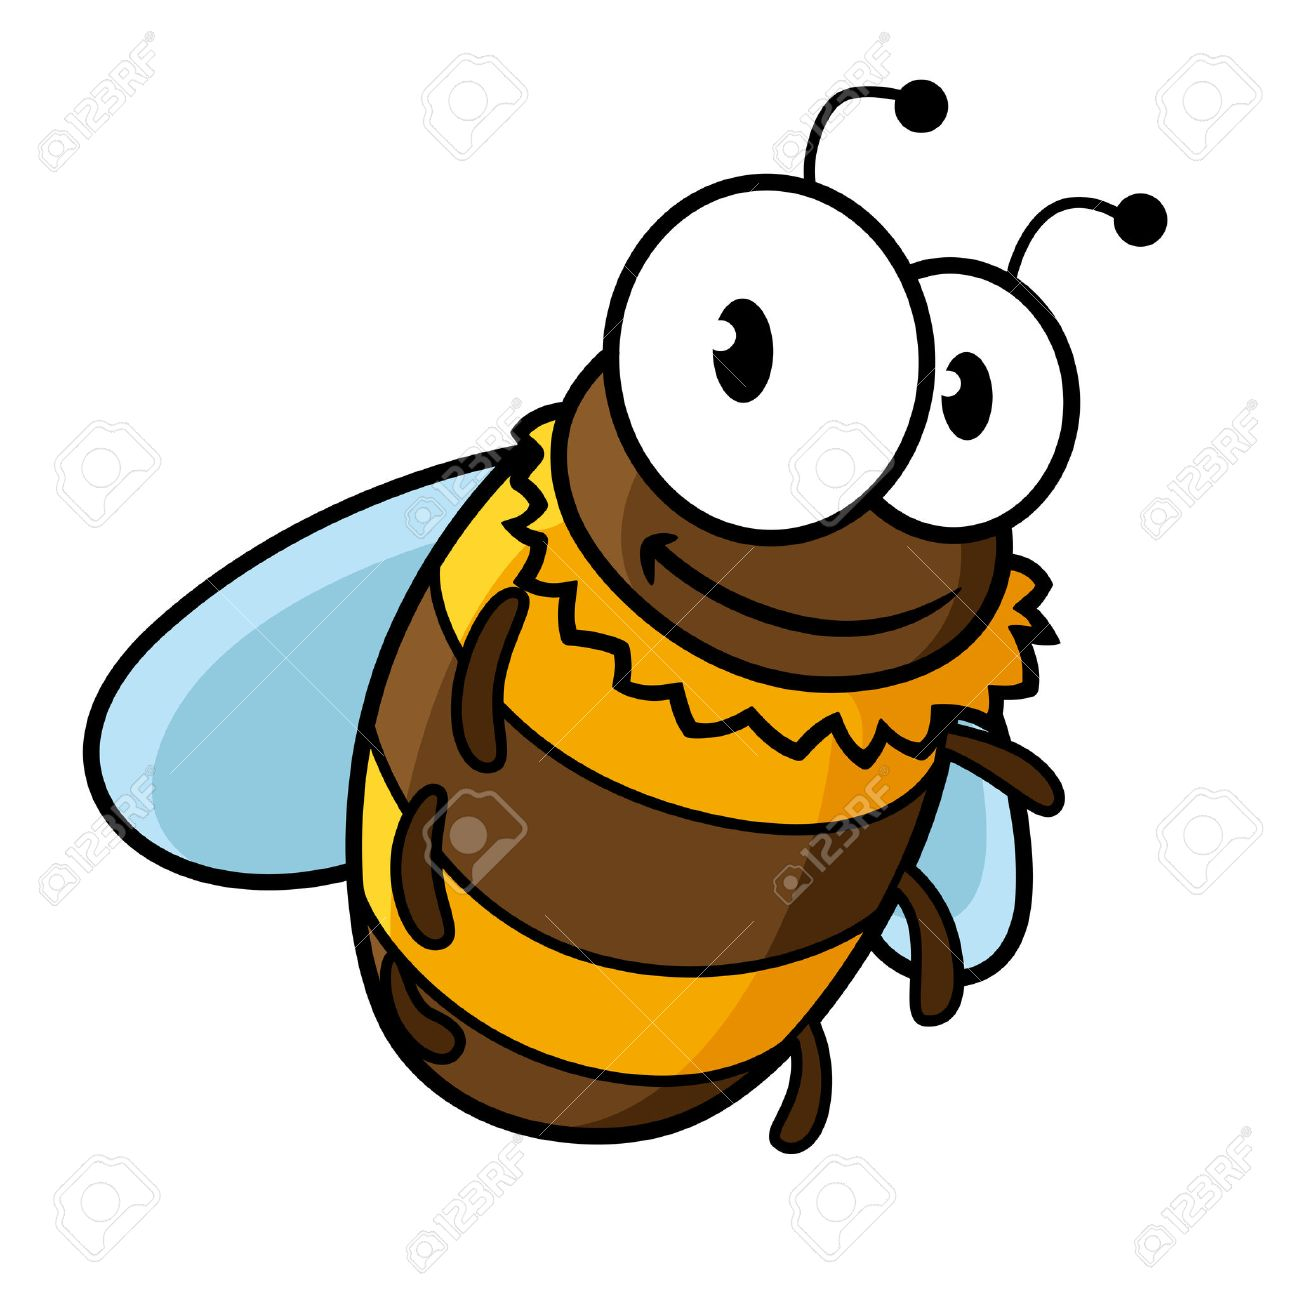 Happy flying cartoon bumble bee or honey bee with a striped body and large googly eyes